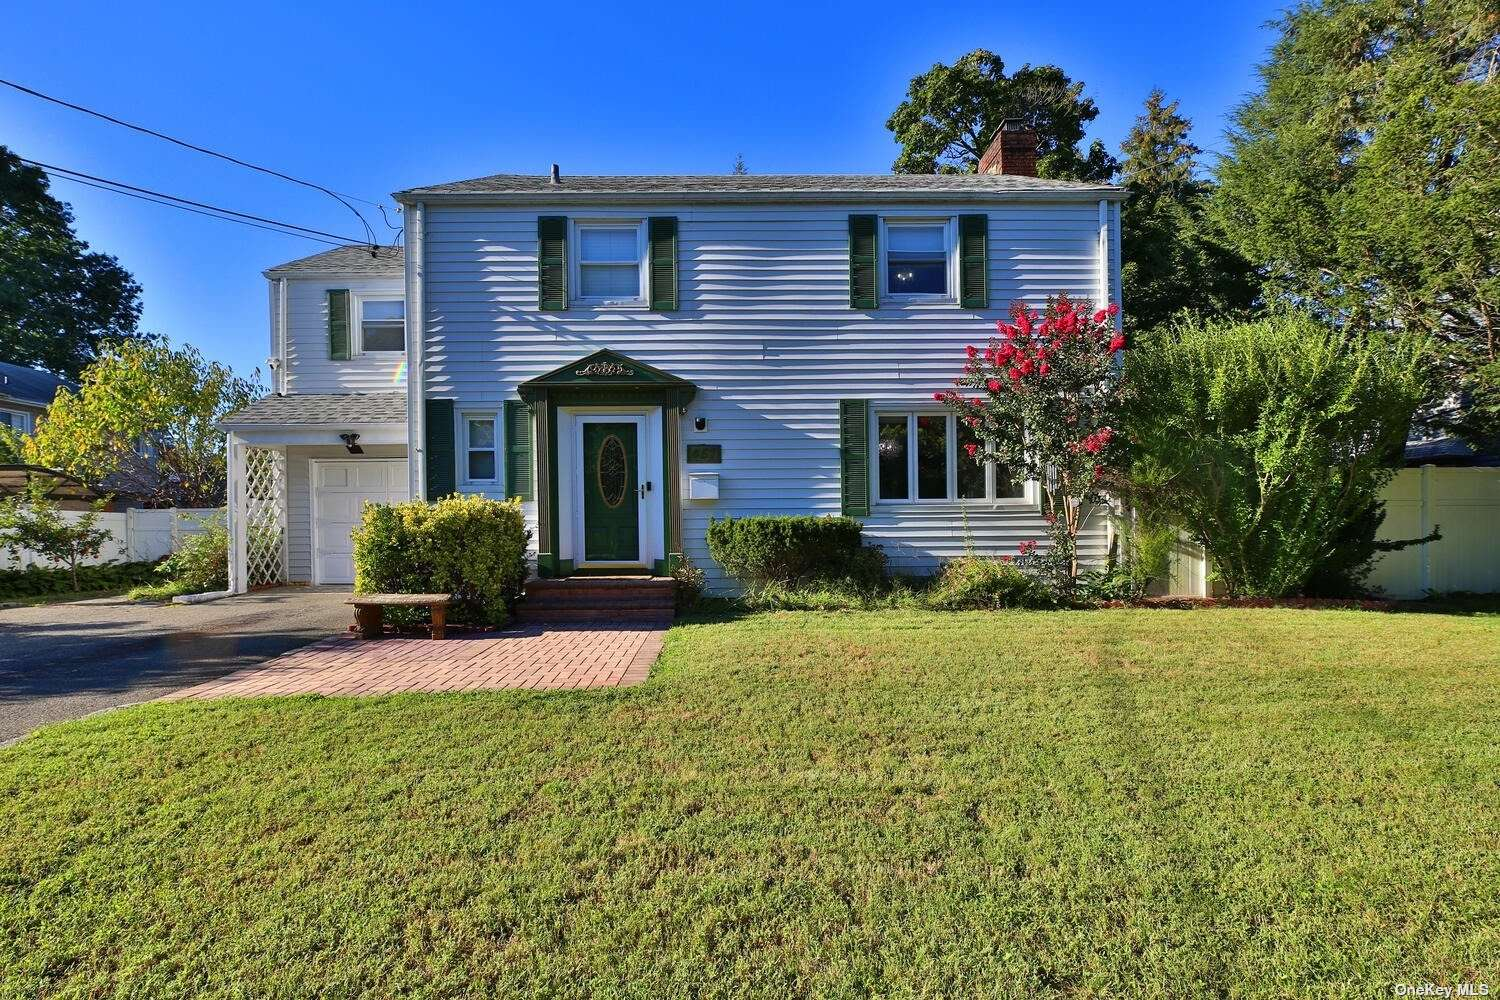 Beautiful 4 Bedroom Colonial in the desirable Estates Section of Westbury, Conveniently located to all shops, restaurants, LIRR, highways, etc. Living Rm w/Fireplace, Formal Dining Rm, EIK w/granite countertops, Den, Fenced 80x100 property, 4 Bedrooms, 1.5 baths, 1 car Garage, Full Basement